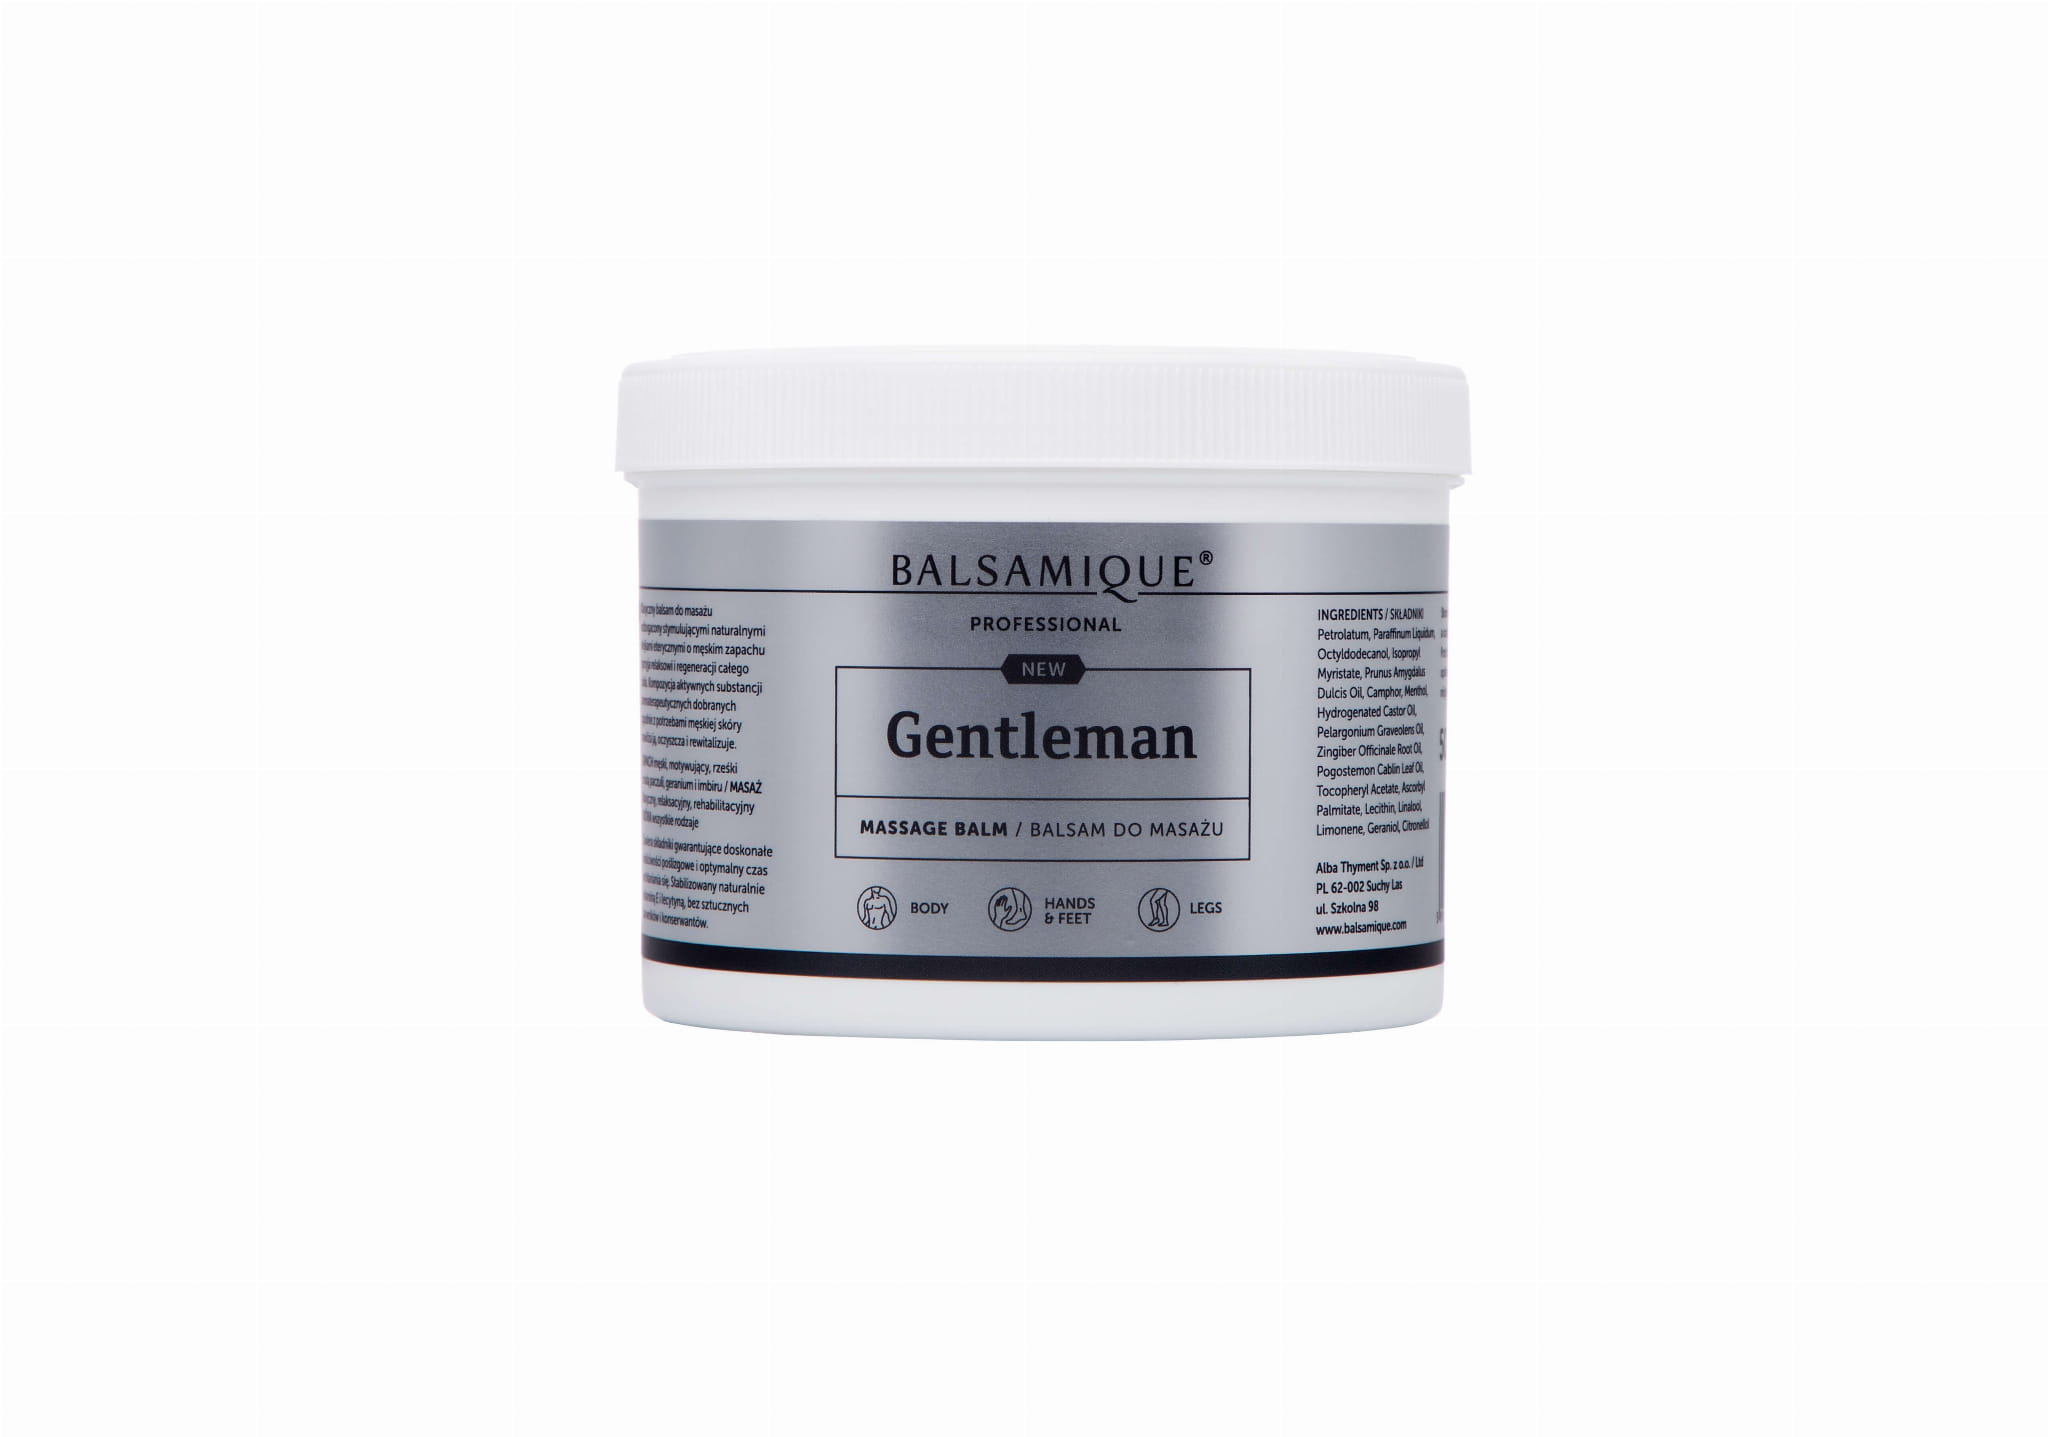 BALSAM do masażu GENTLEMAN, 500ml